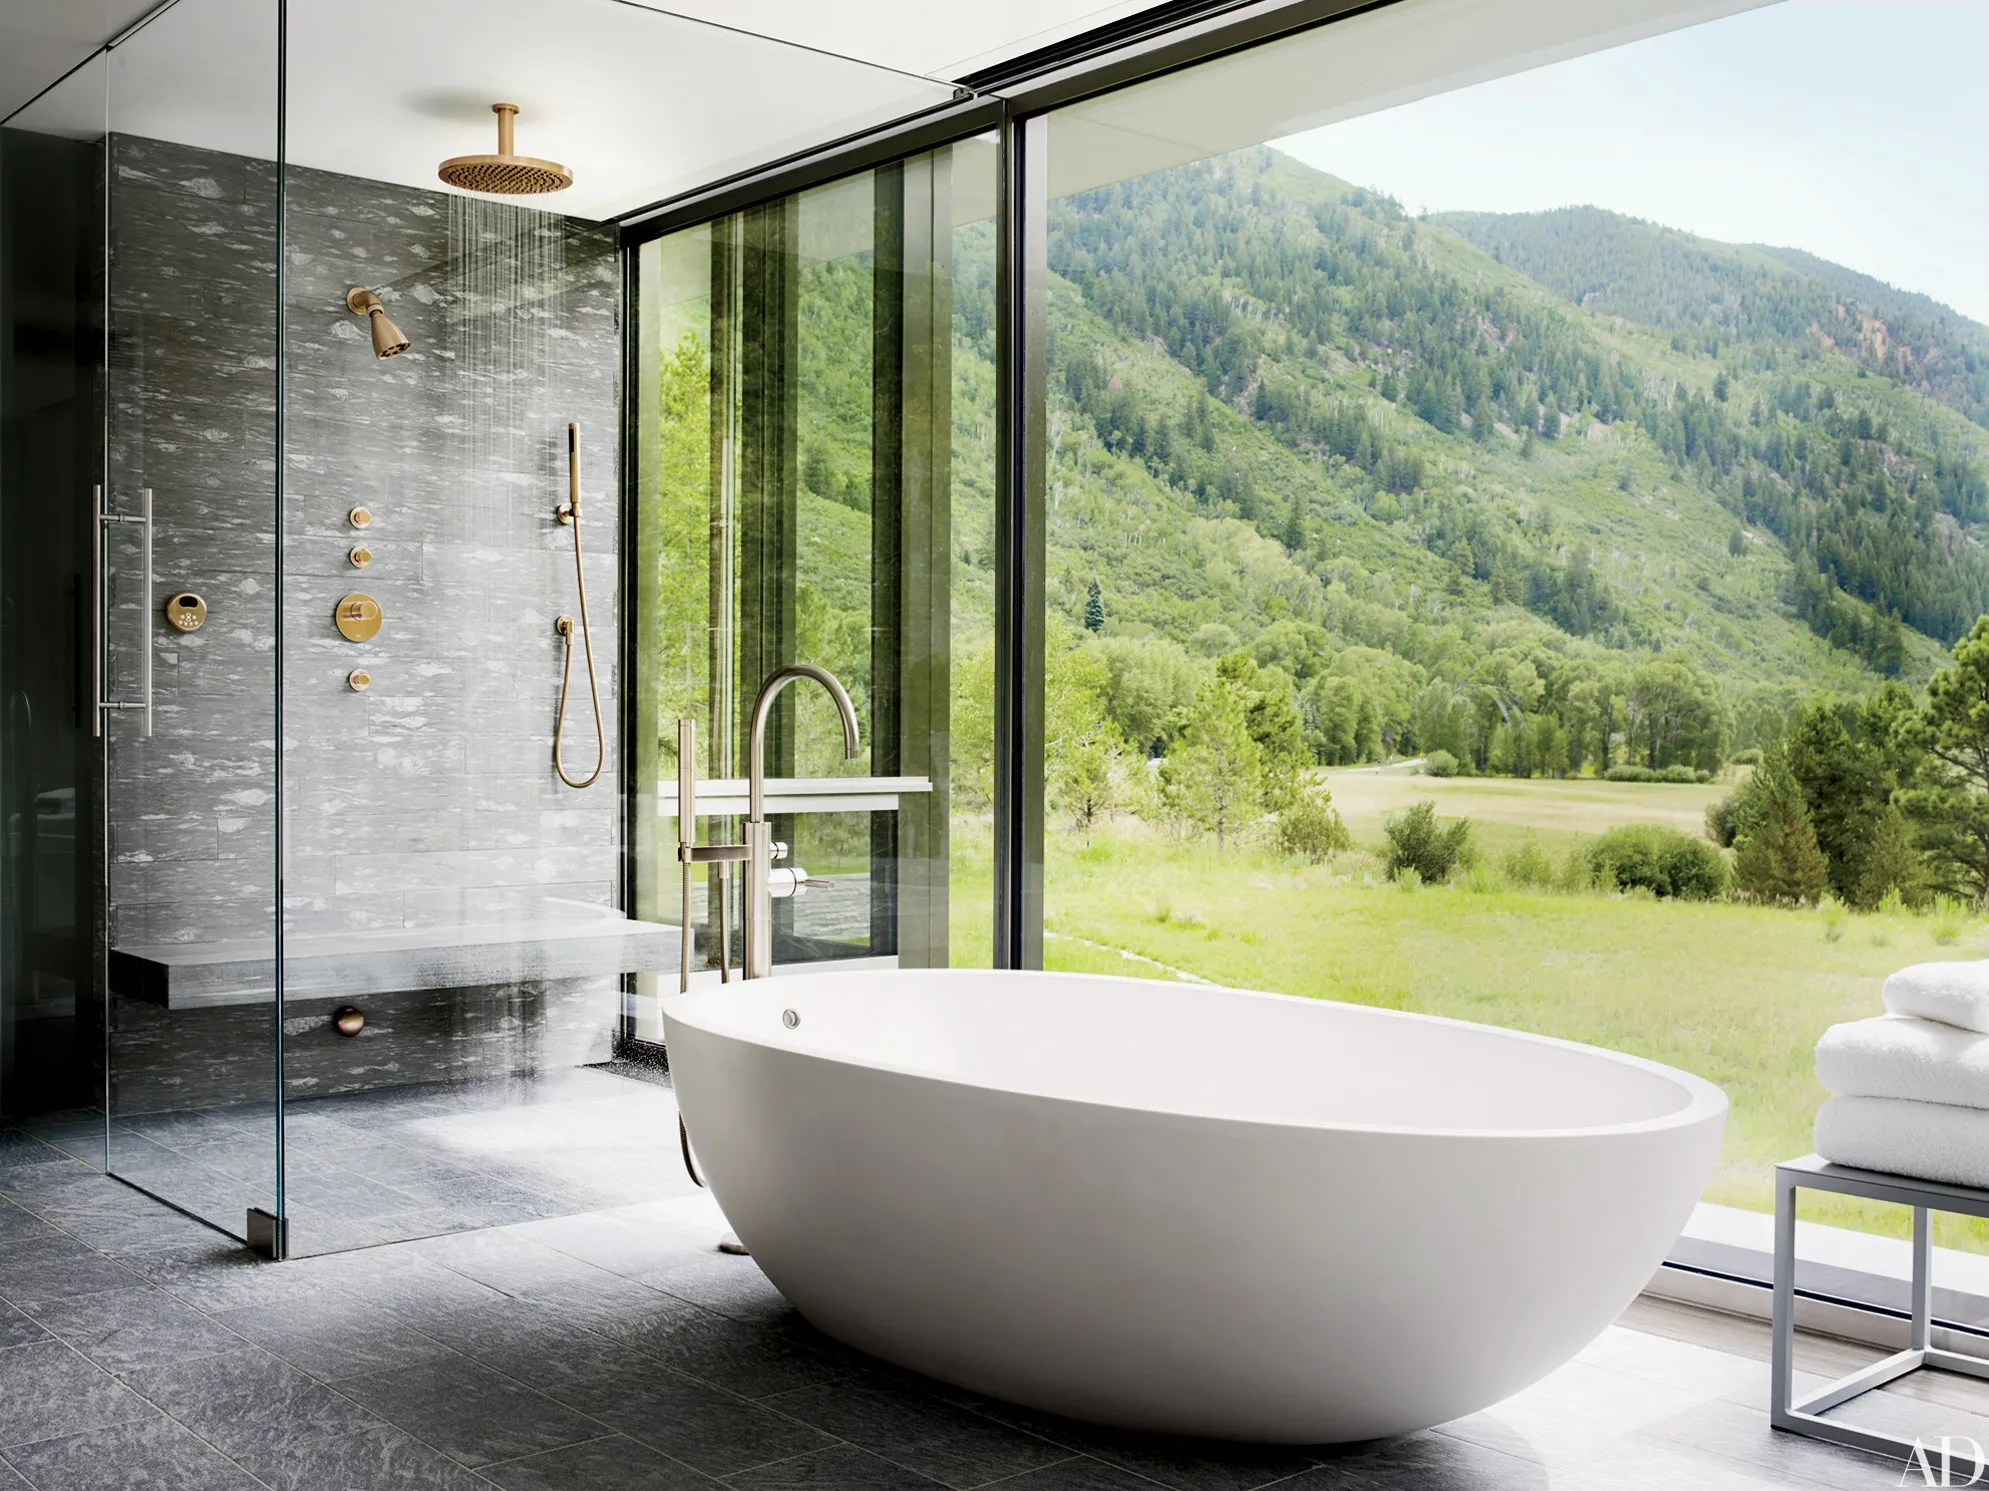 46 Bathroom Design Ideas To Inspire Your Next Renovation Architectural Digest